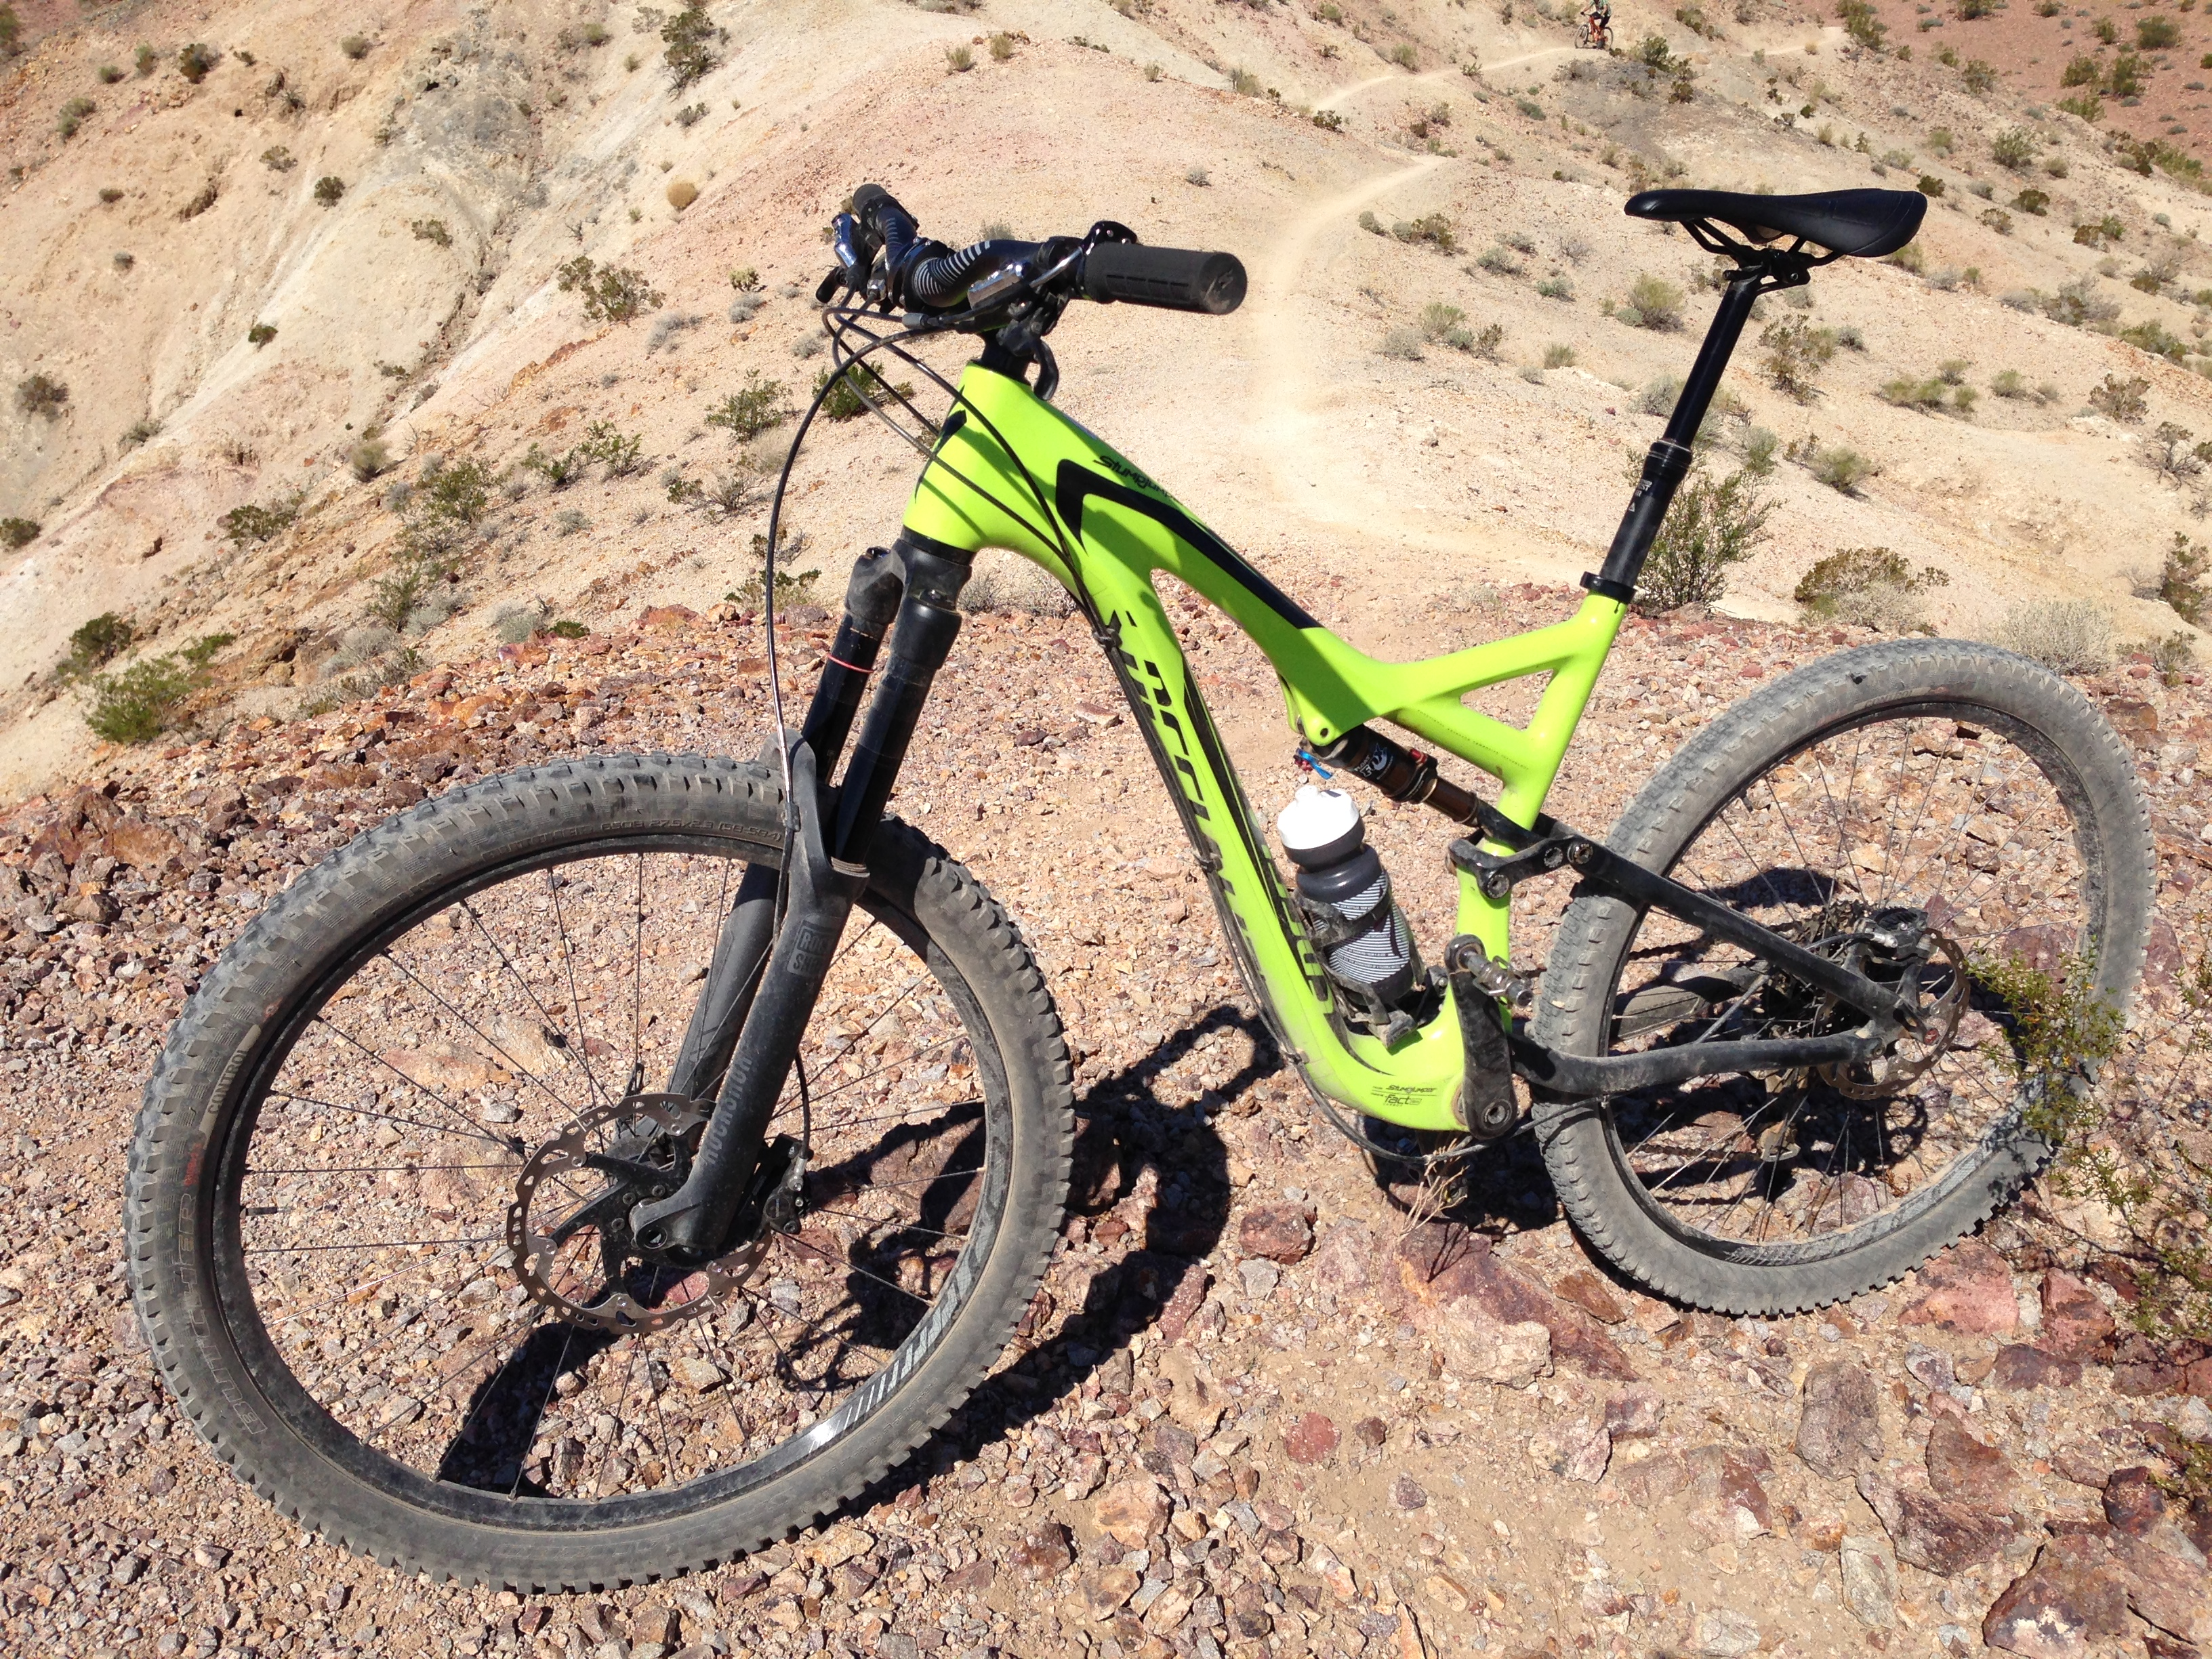 5f65458c328 Review: Specialized Stumpjumper FSR Expert Carbon Evo 650B ...